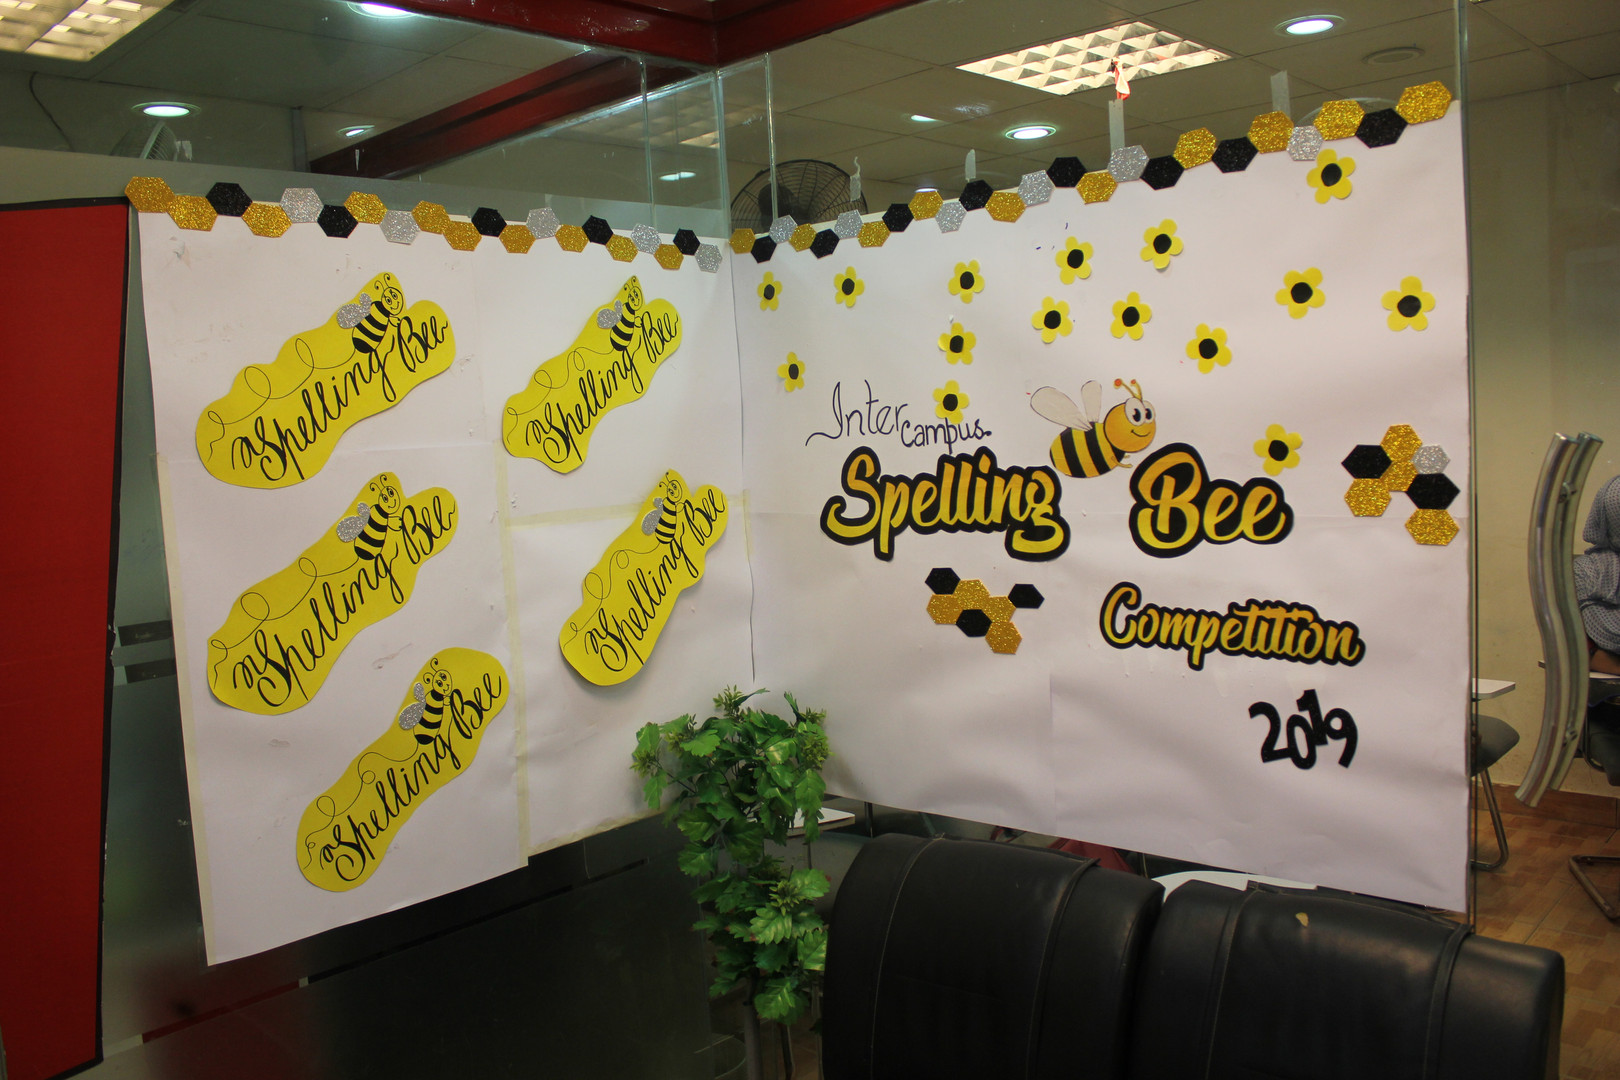 Spell bee compitition